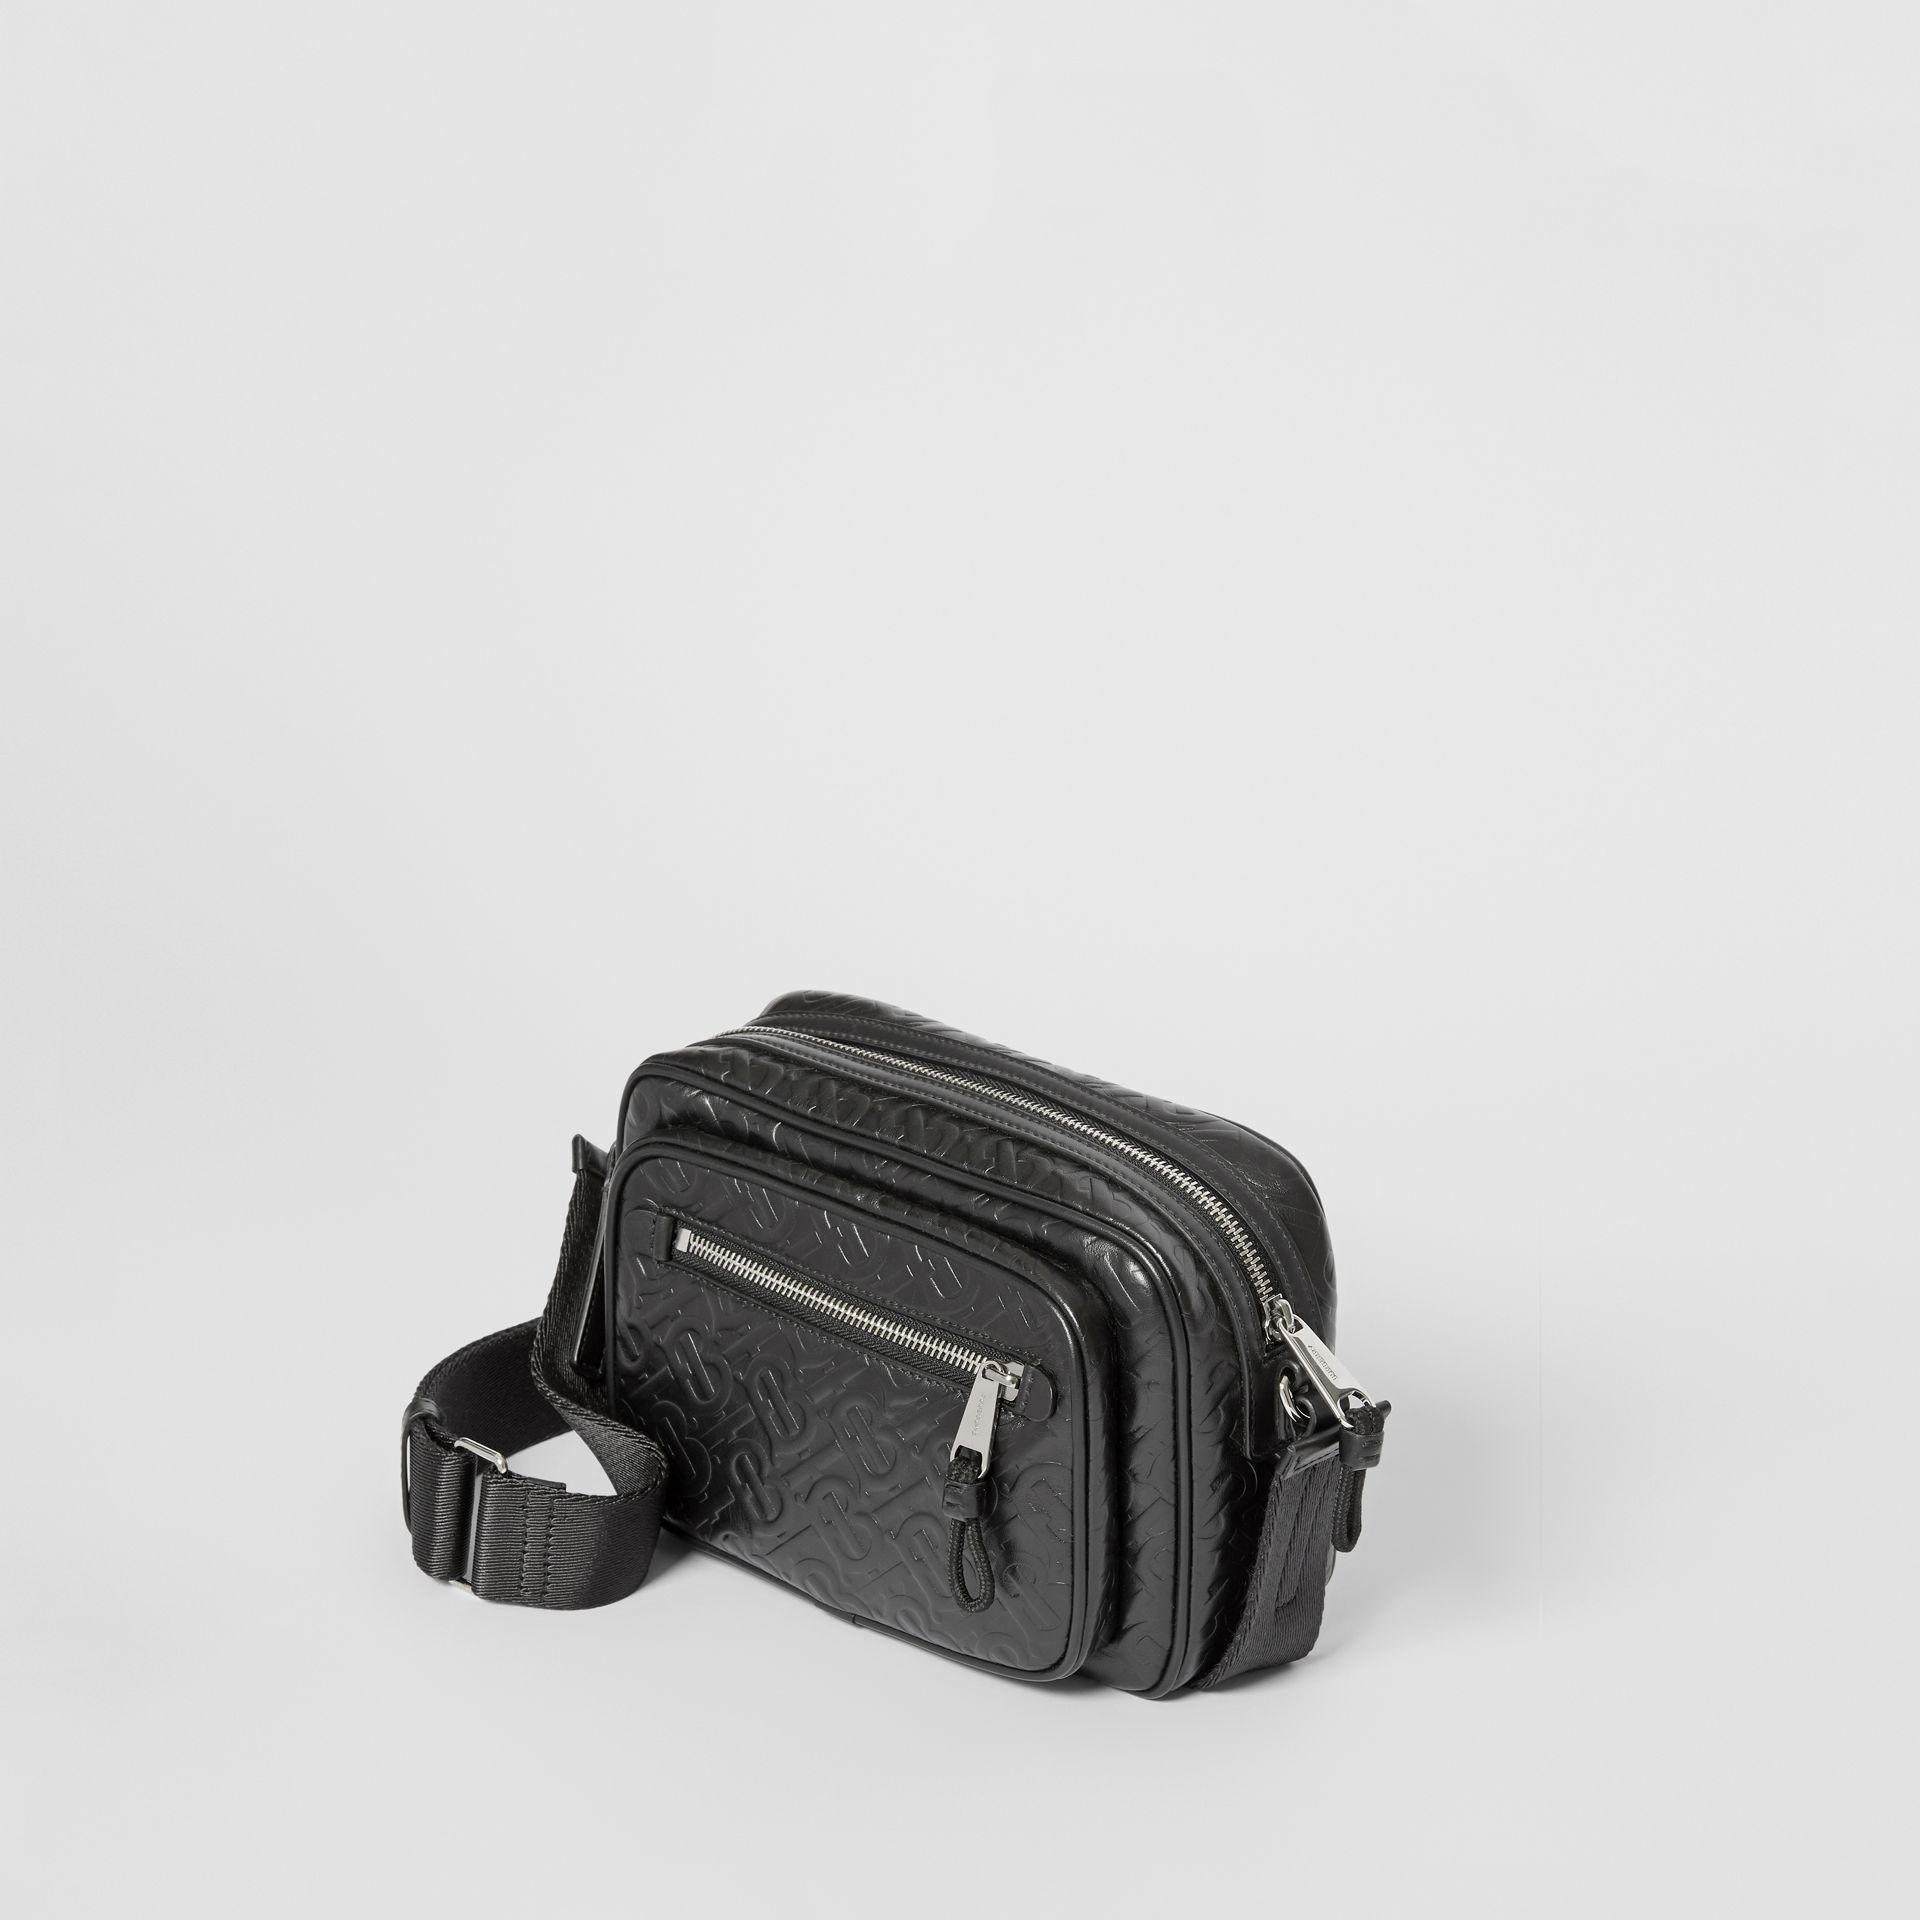 Monogram Leather Crossbody Bag in Black - Men | Burberry Australia - gallery image 3